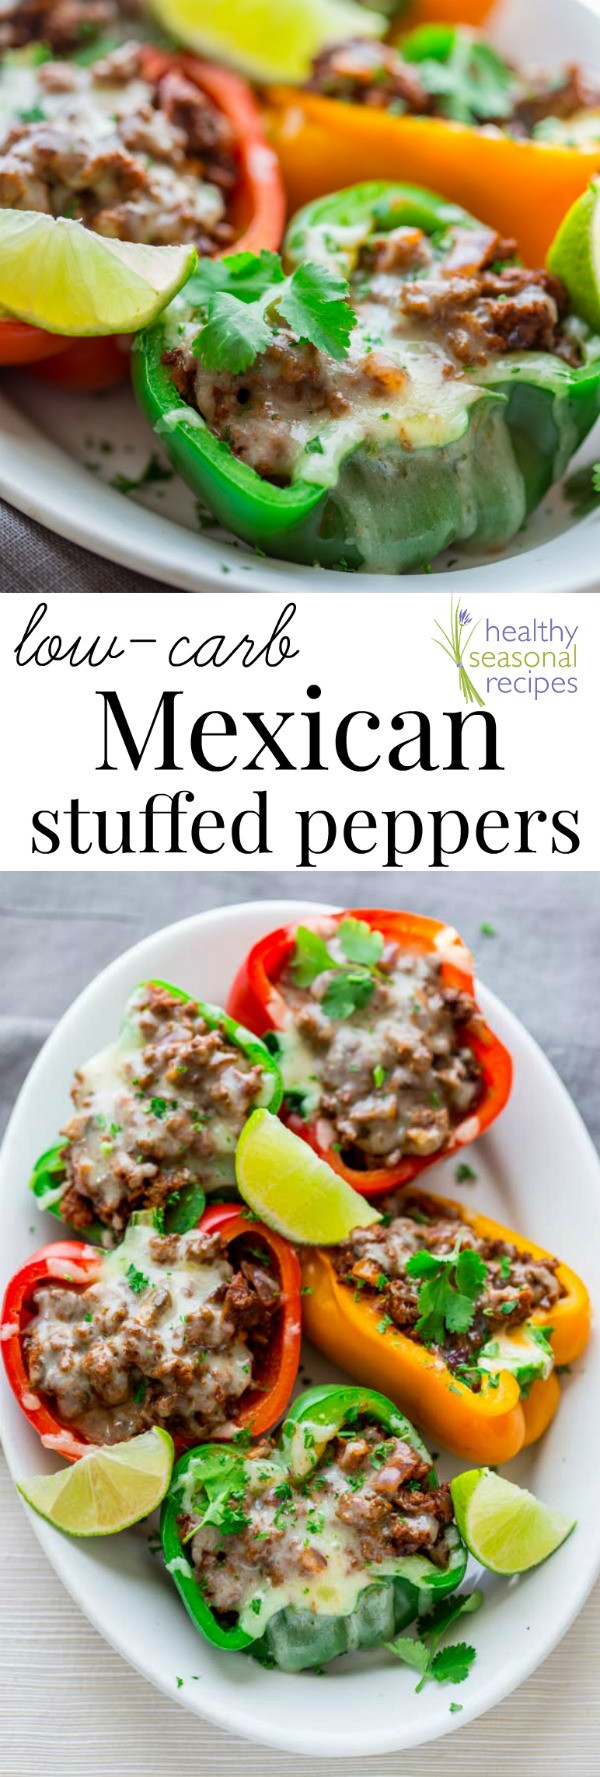 Stuffed Bell Peppers Low Carb  low carb mexican stuffed peppers Healthy Seasonal Recipes